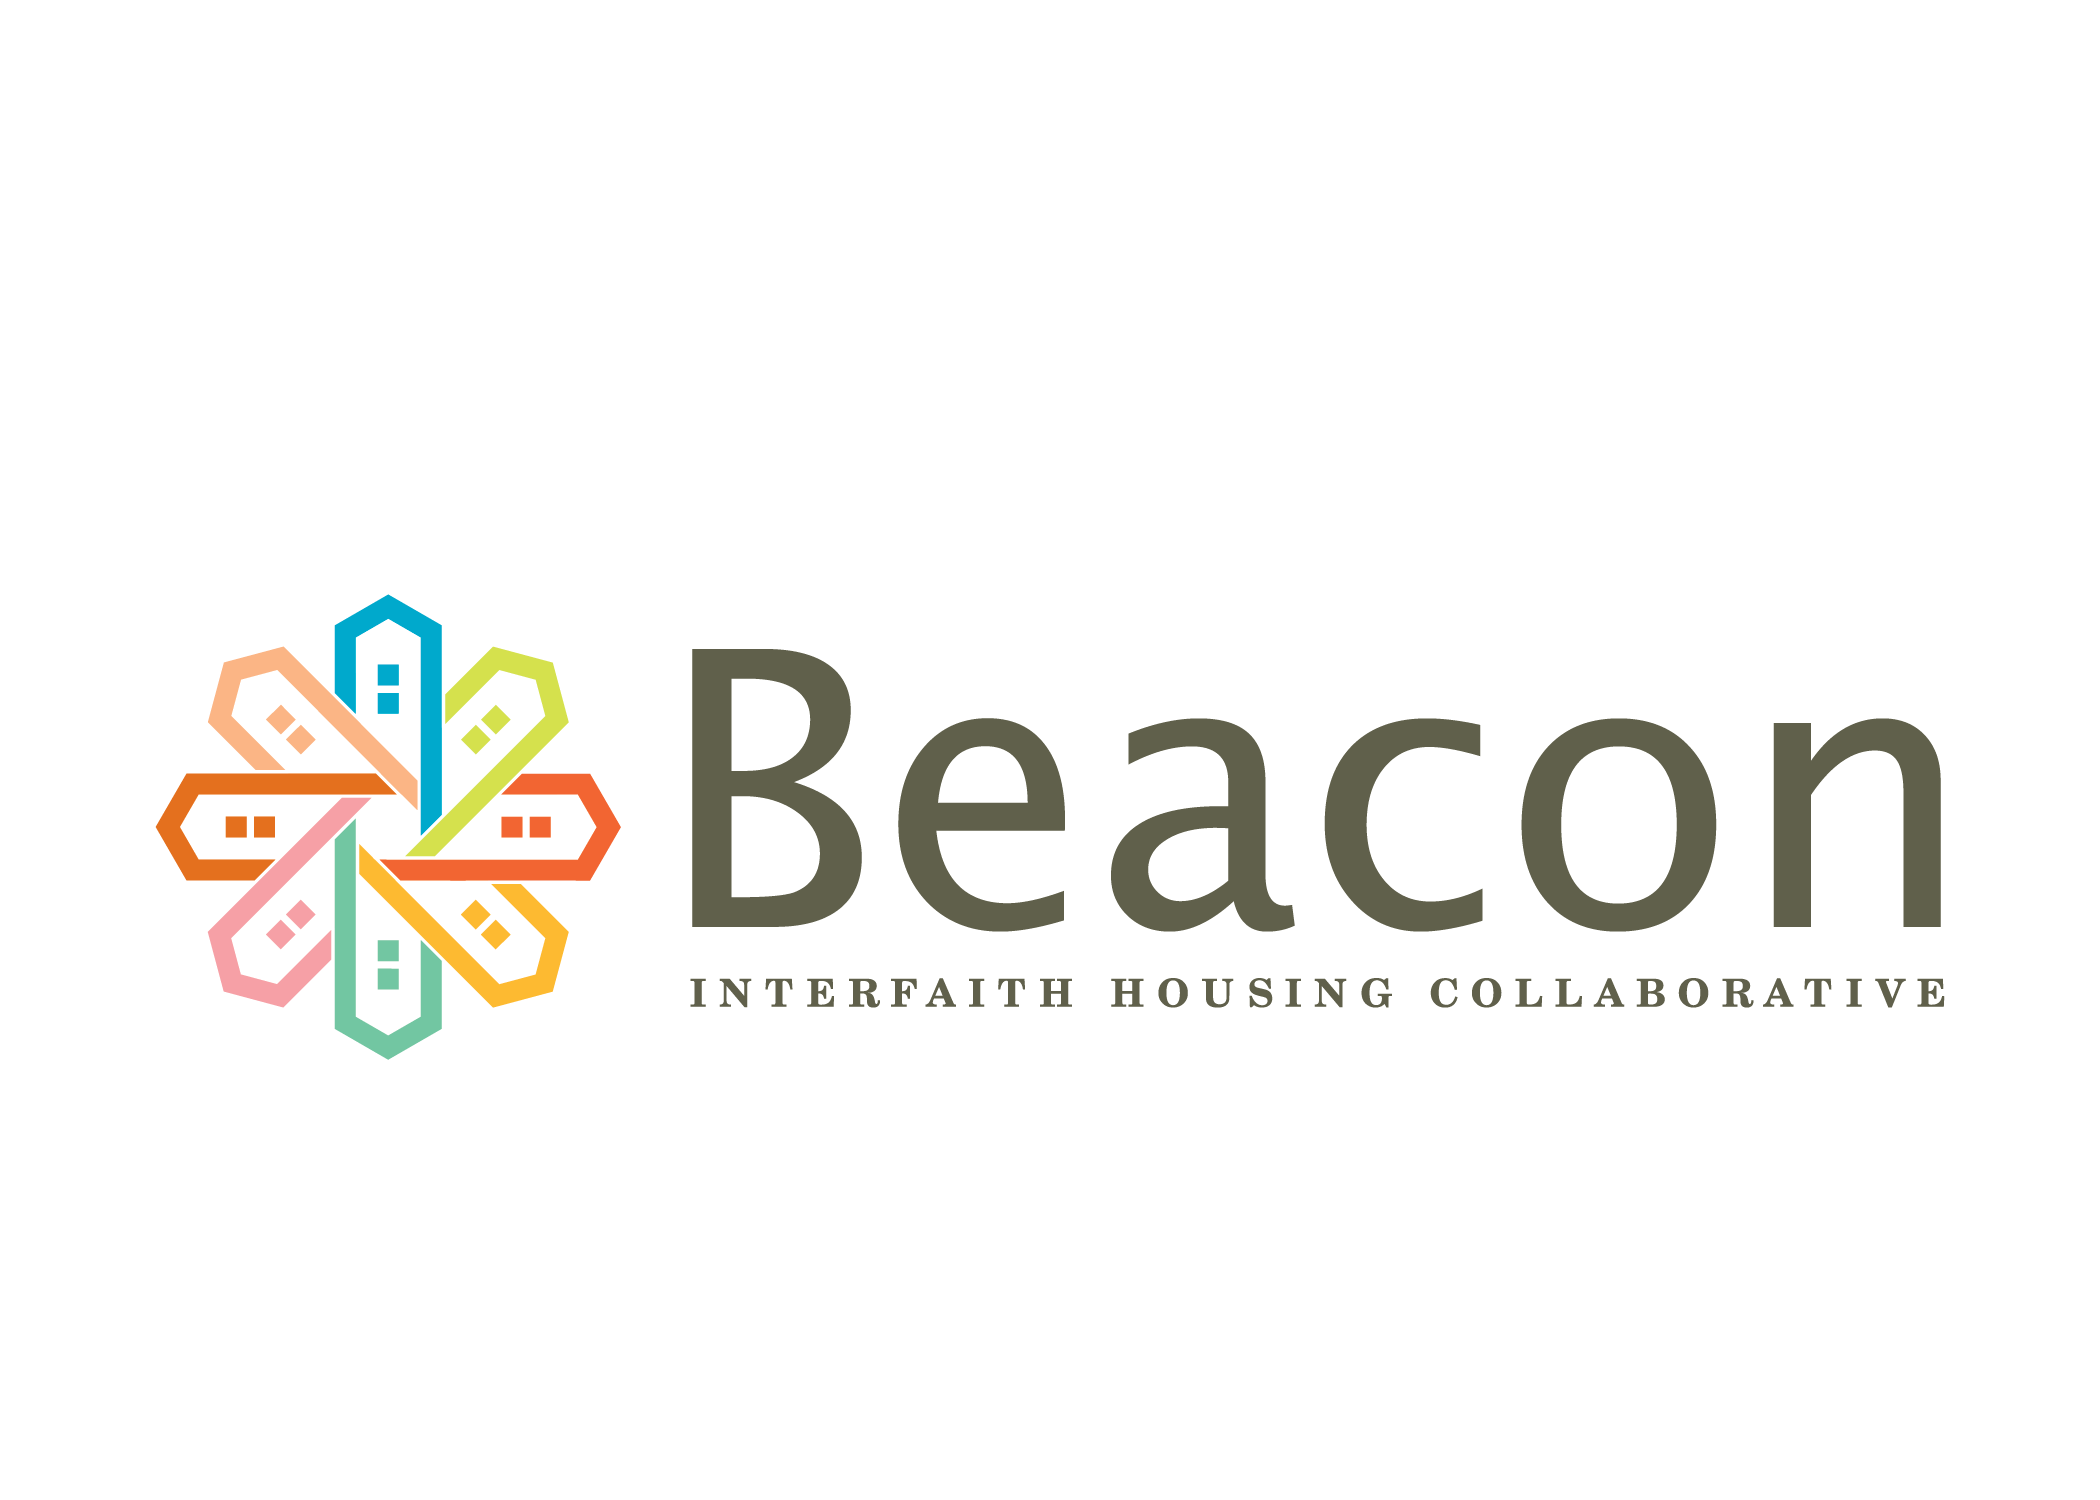 BEACON INTERFAITH HOUSING COLLABORATIVE - Beacon is an interfaith collaborative of congregations ending homelessness through housing, shelter and advocacy.Ask us about Beacon when you're in, or click here